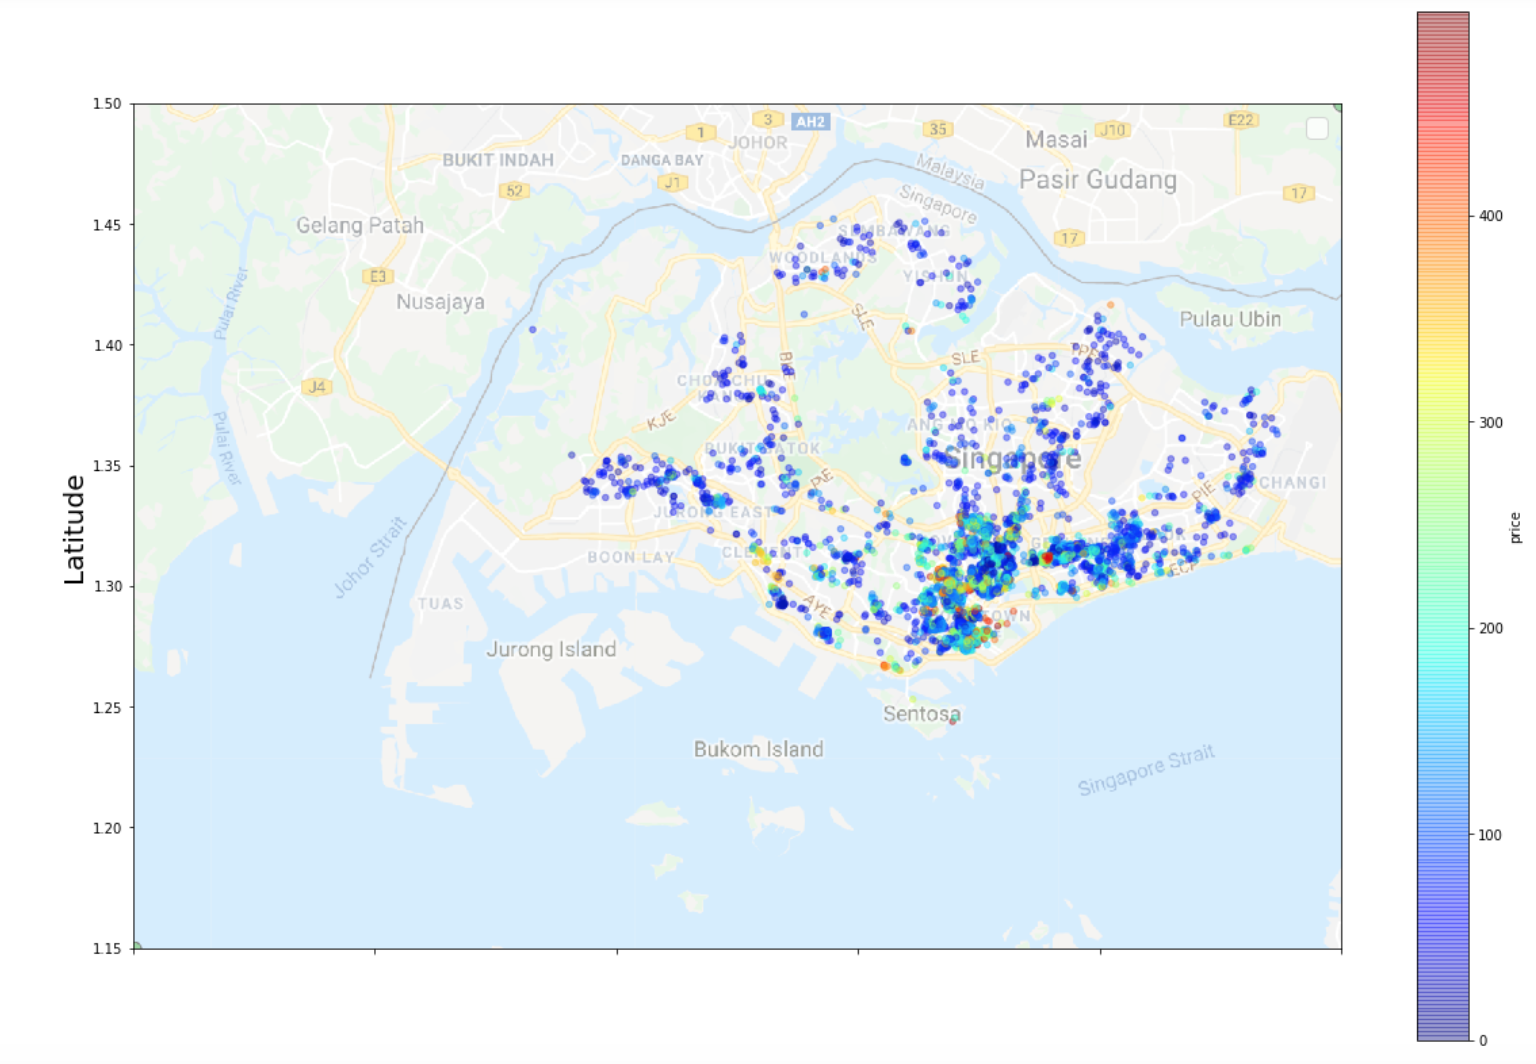 Let S Plot Airbnb Locations And Prices On A Map Of Singapore By Chris I Towards Data Science